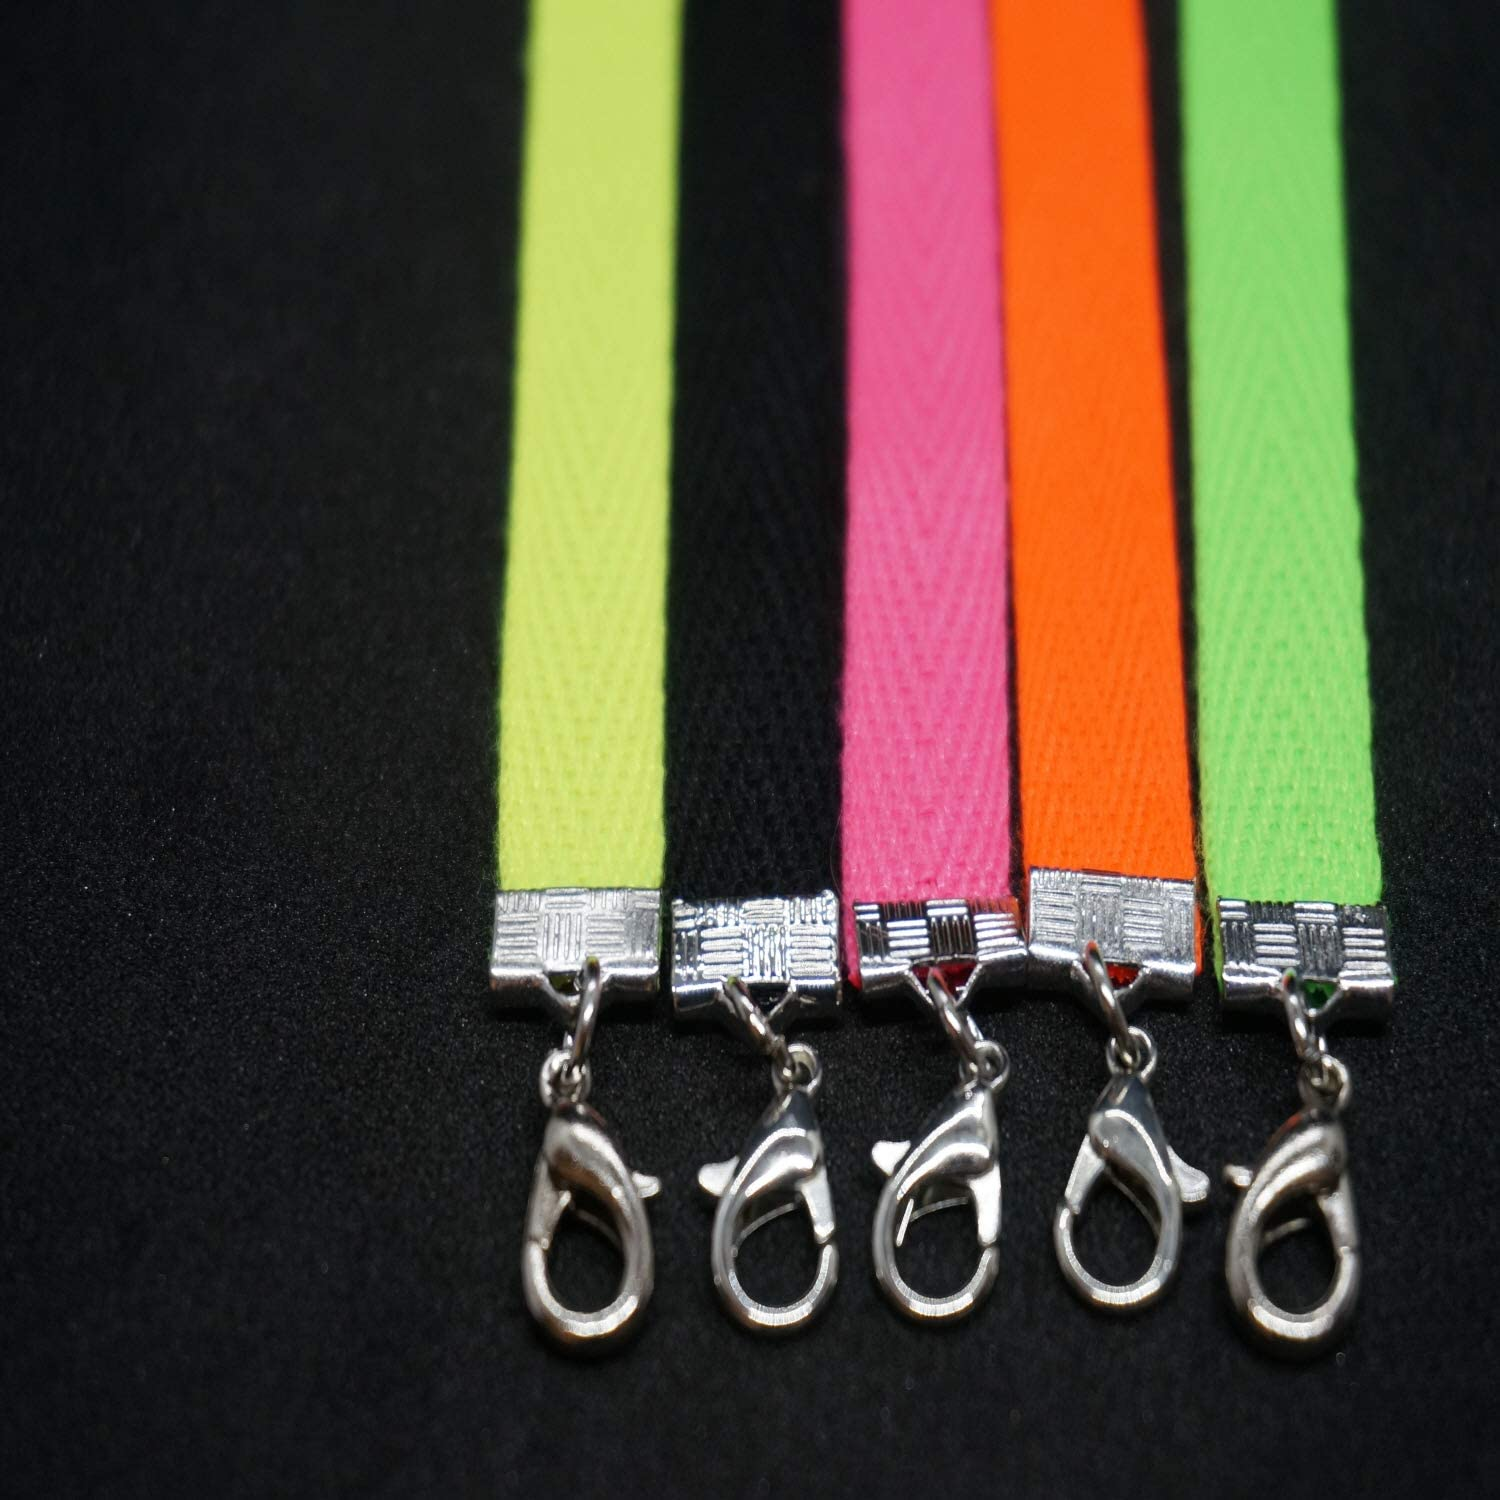 5 Pack Mask Lanyard Holder Max 73% Fees free!! OFF C Womens Mens Accessory